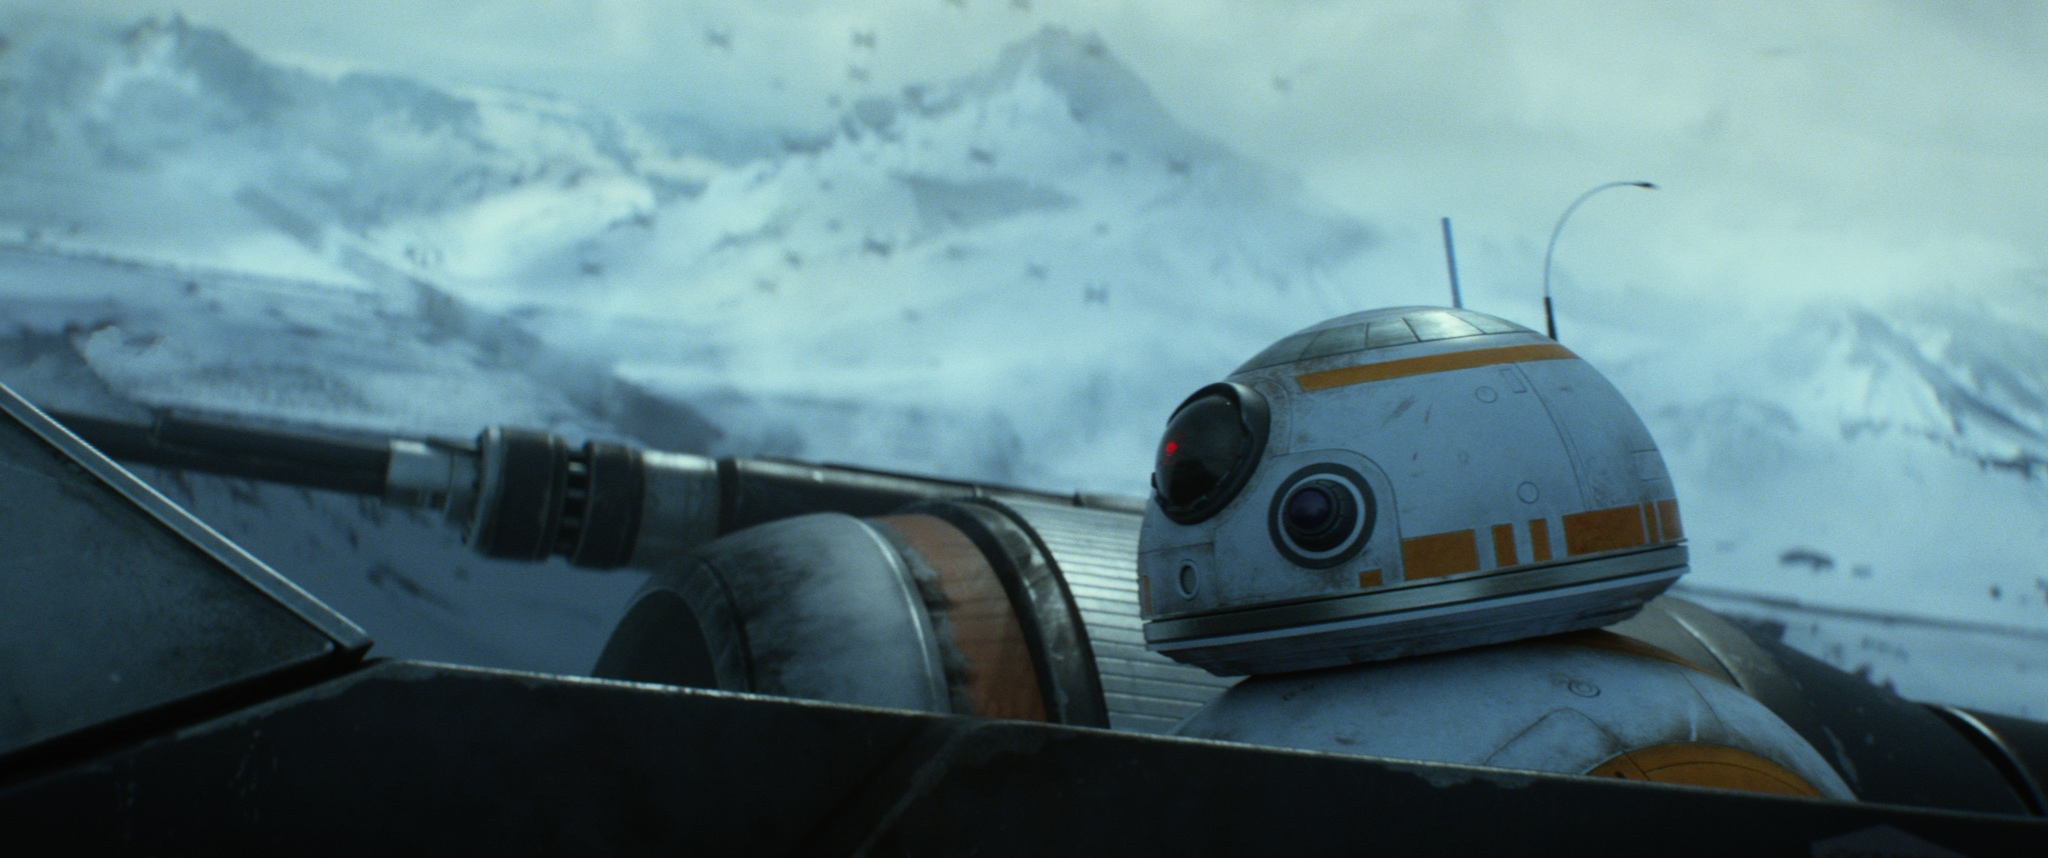 BB-8 an astro mech in the back of an X-wing, as TIE fighters close in.